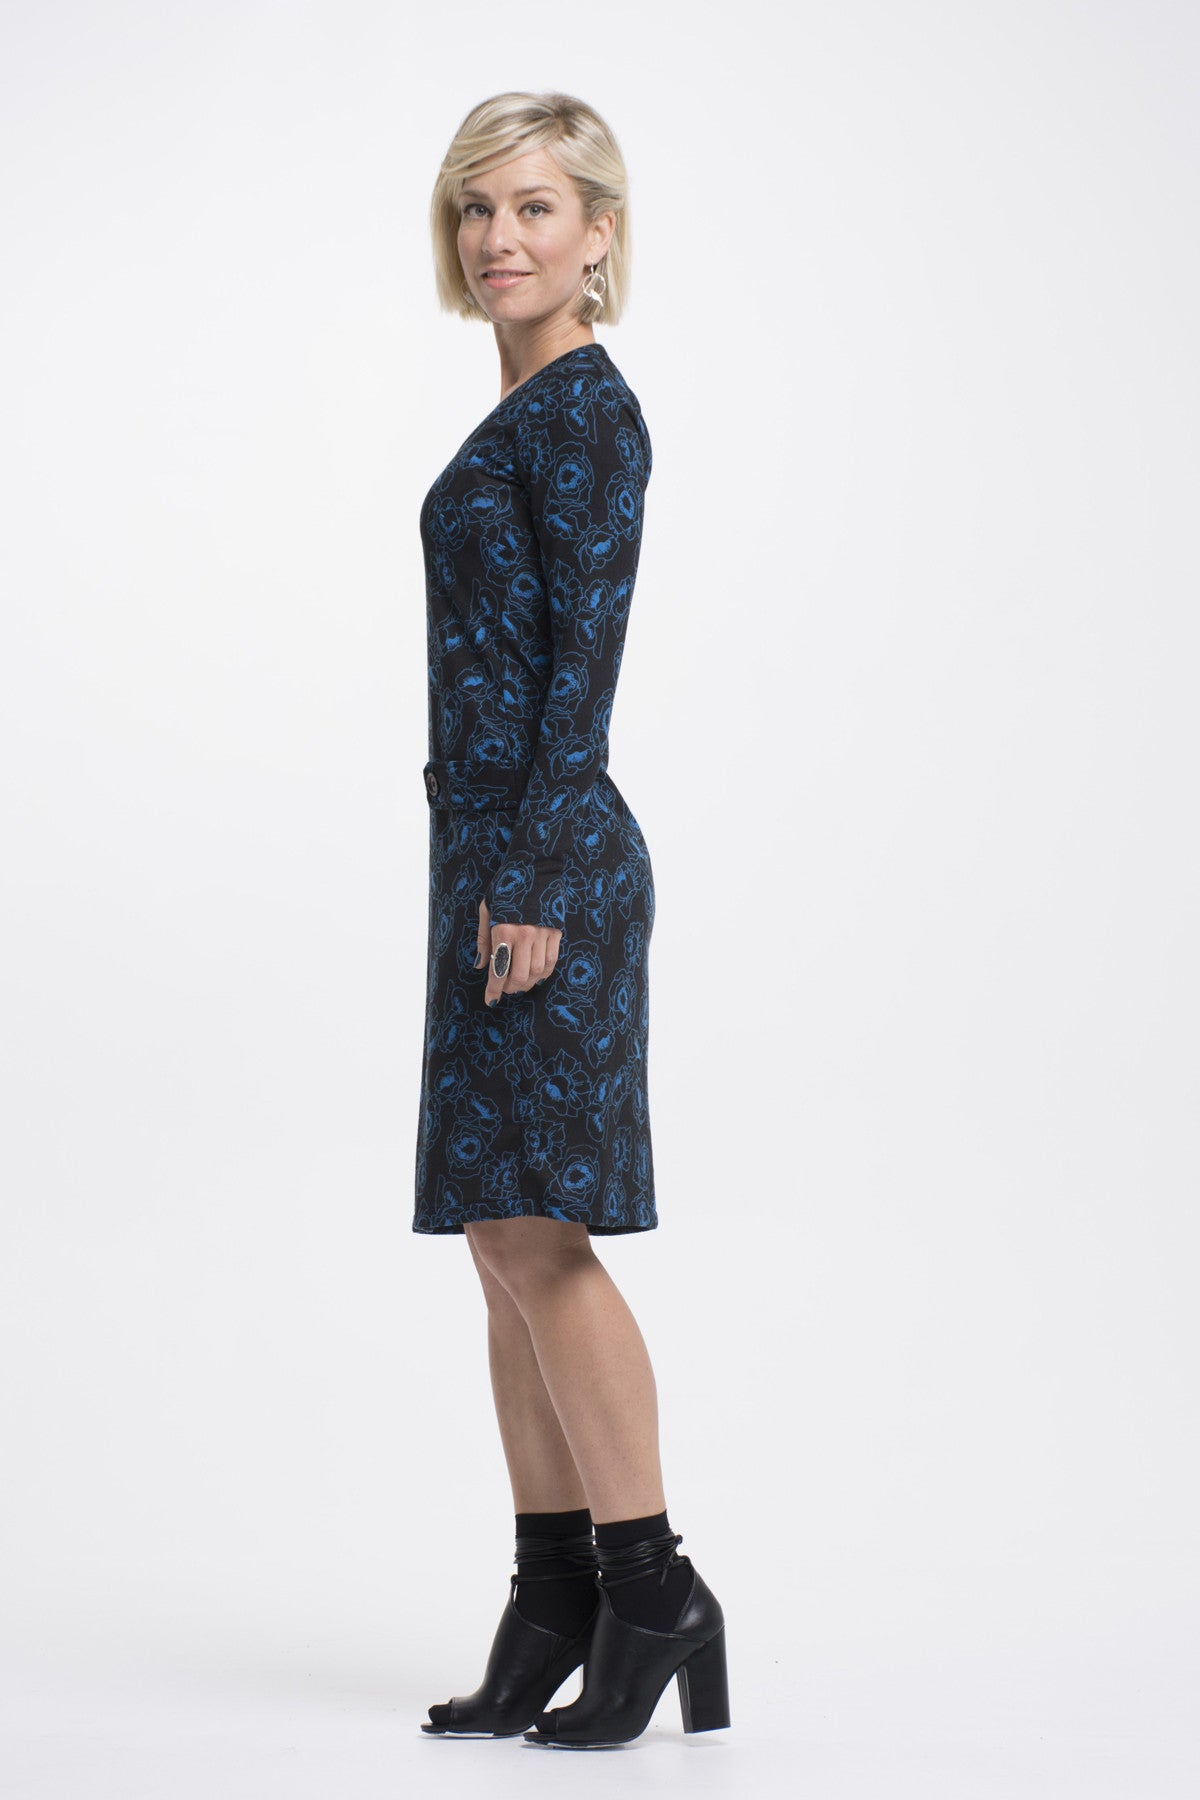 Vesta Sweater Dress - Blue Rose was $198 now $178